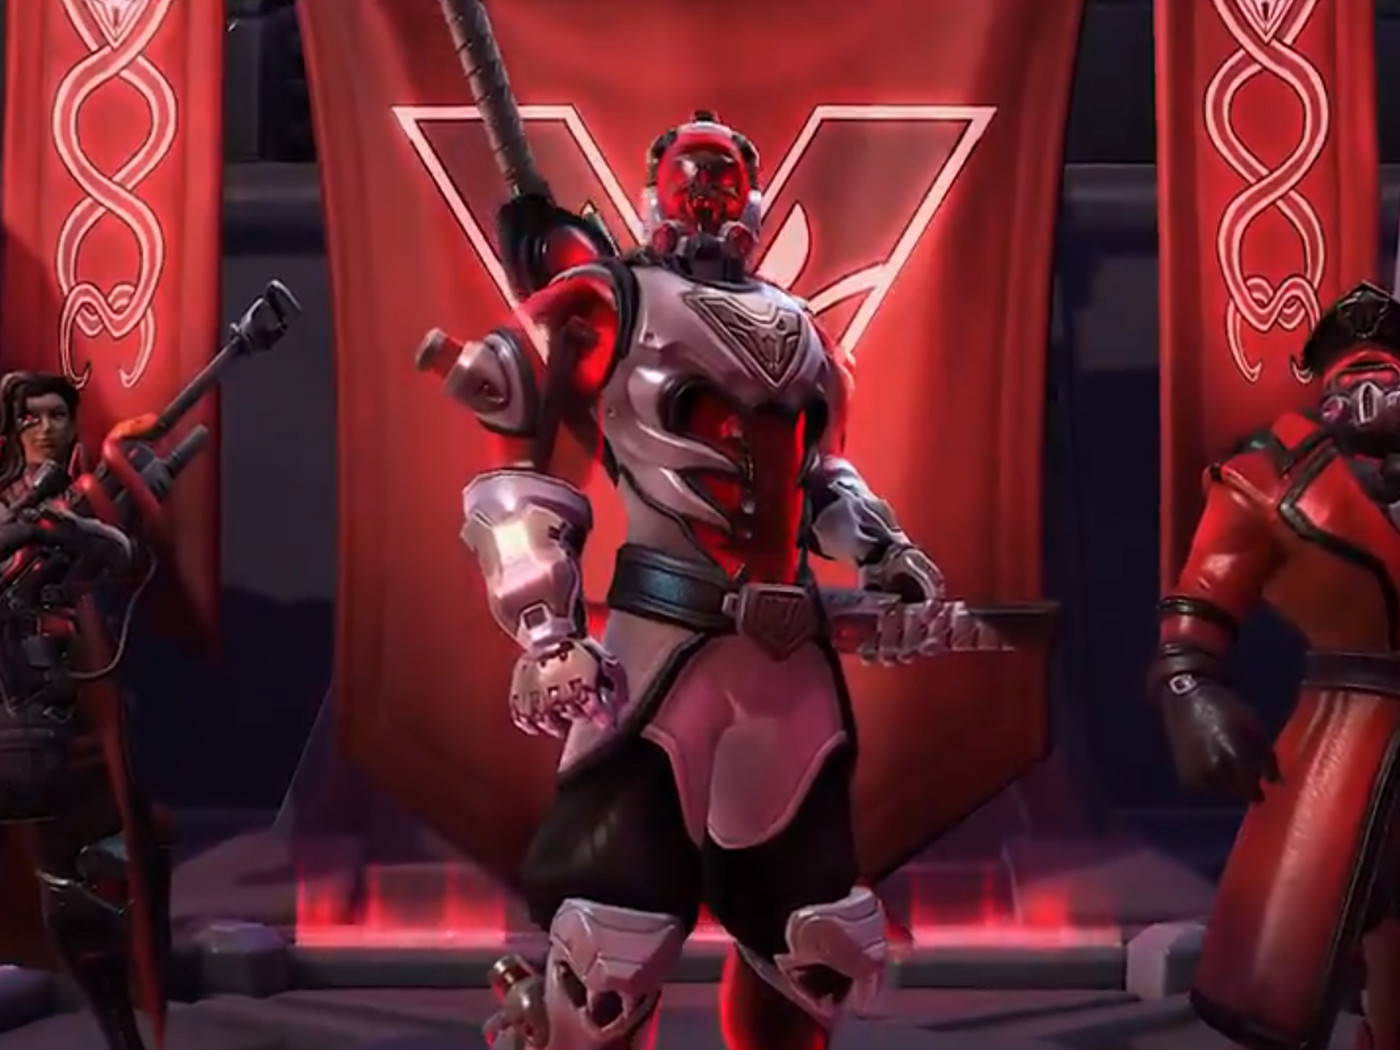 We Would Love These Slick Heroes Of The Storm Skins In Overwatch Heroes Never Die The best site dedicated to analyzing heroes of the storm replay files. these slick heroes of the storm skins